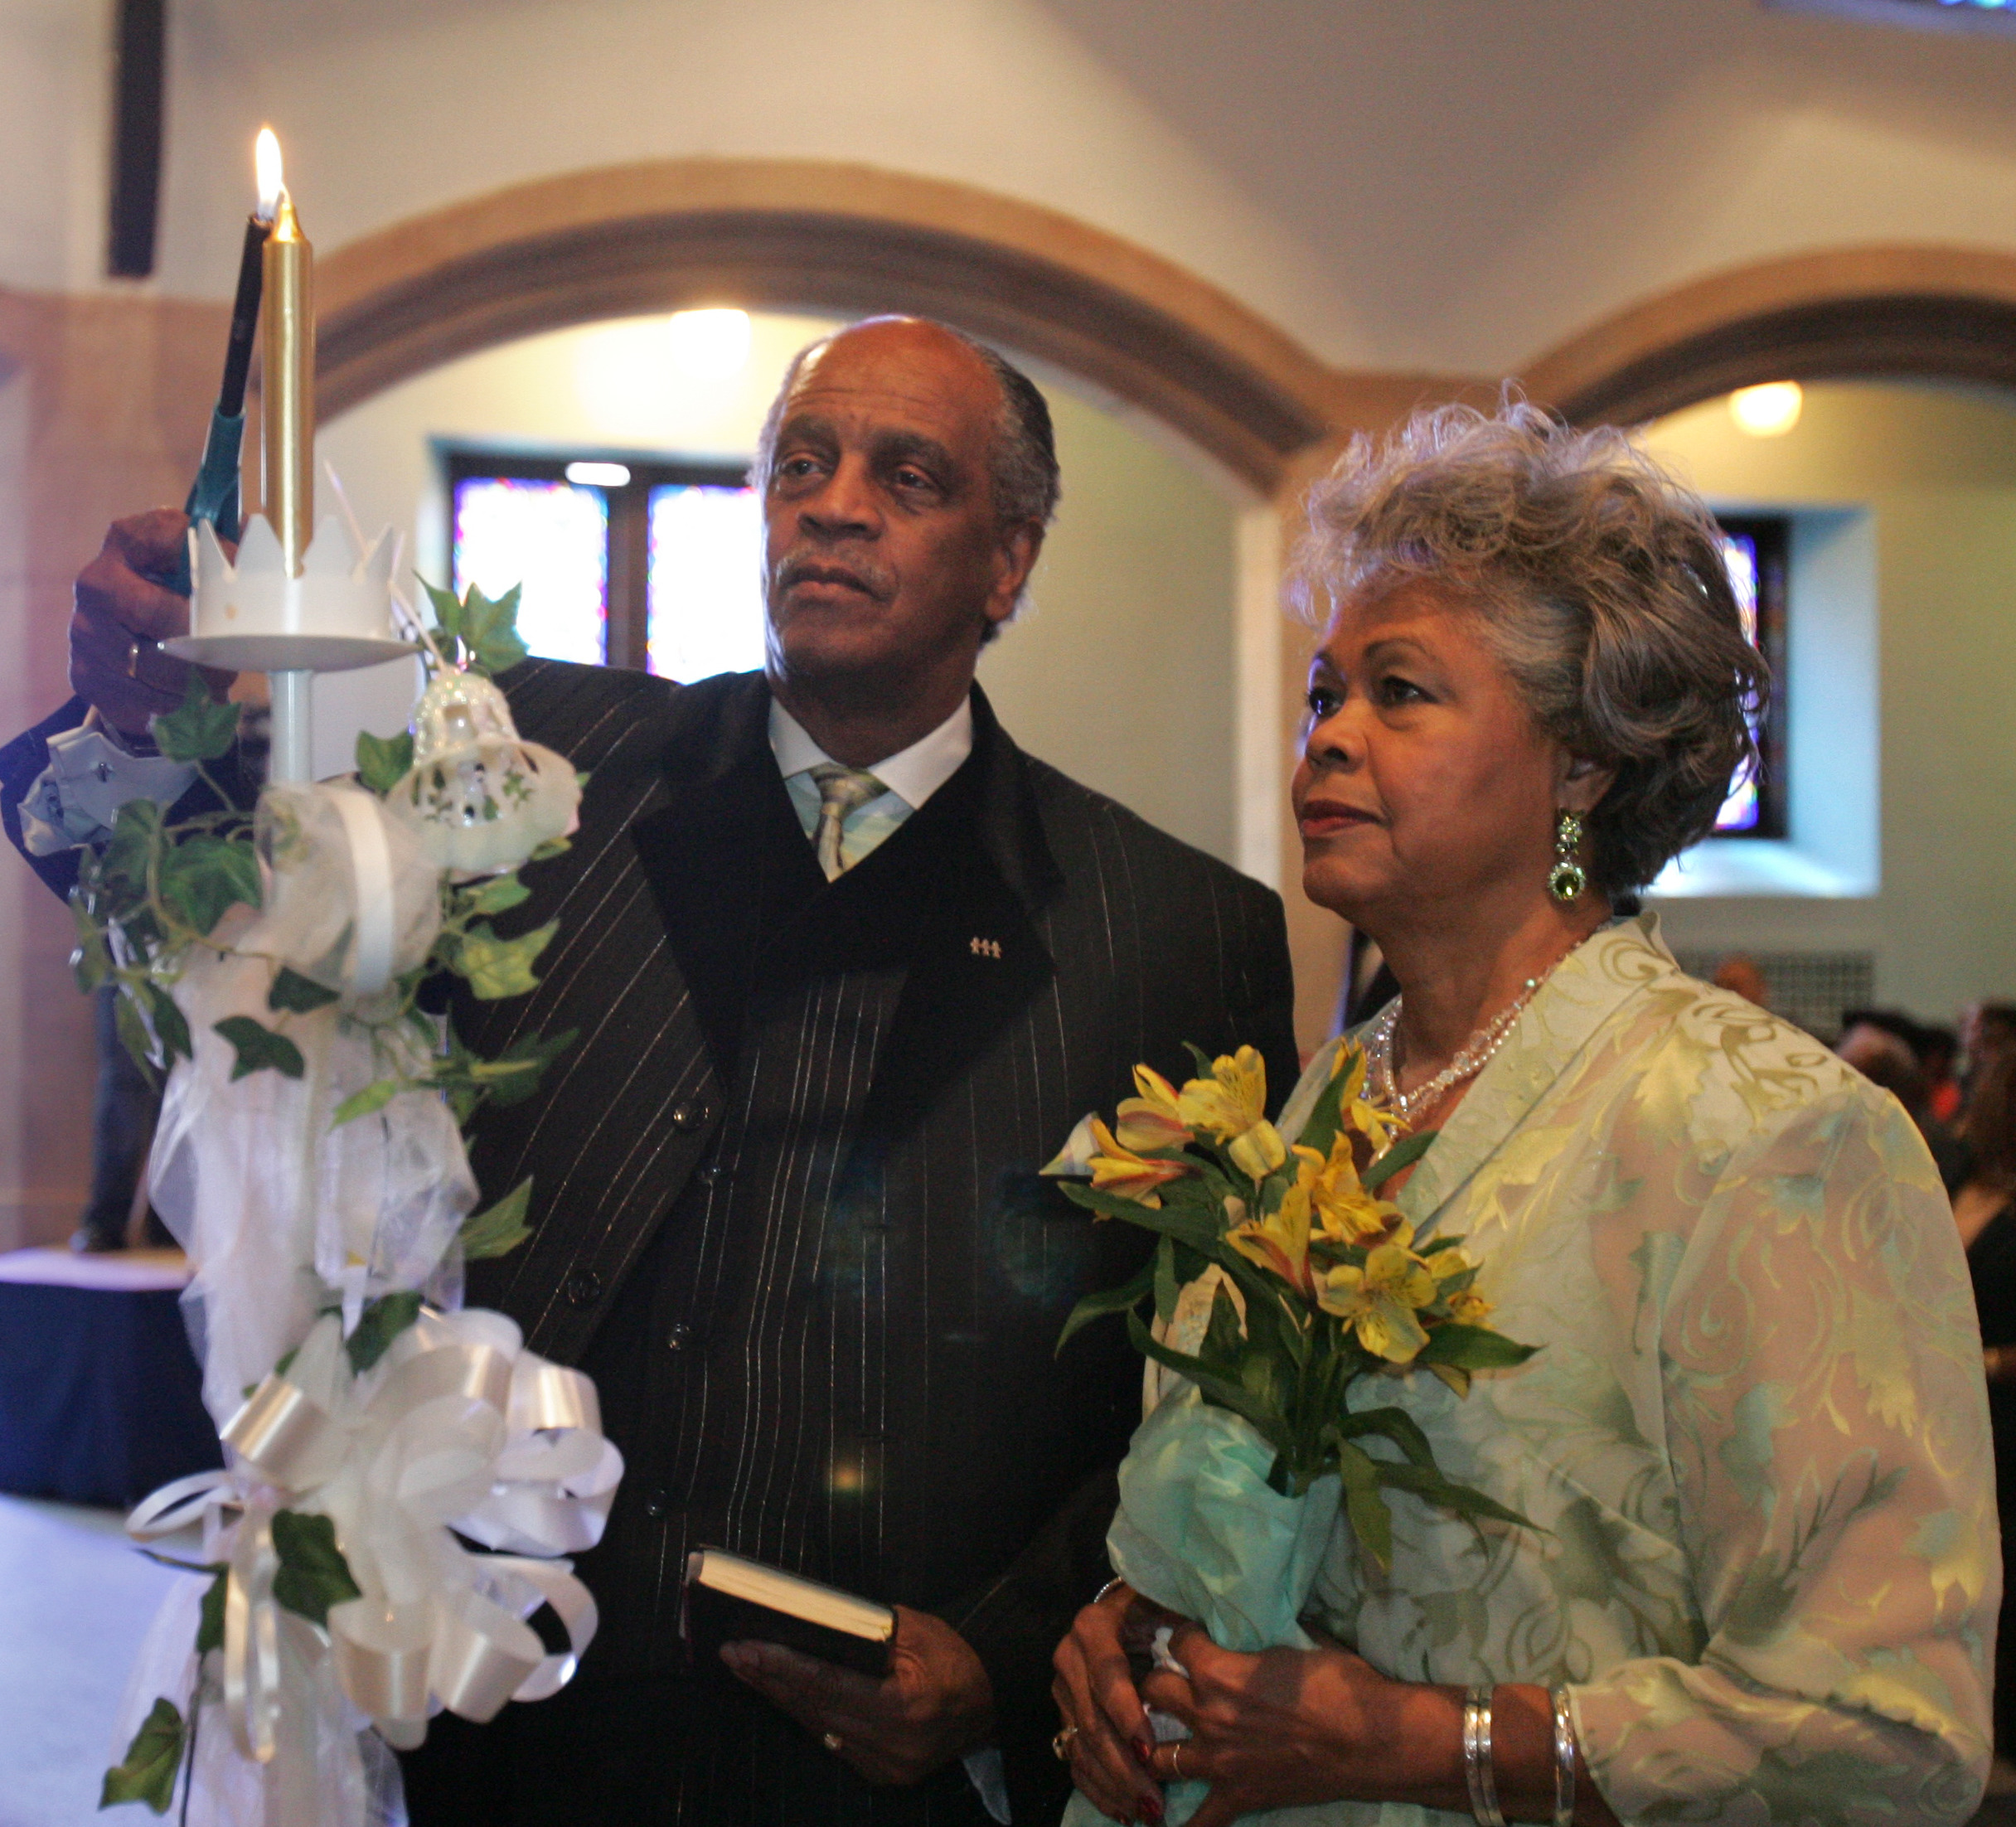 Wedding Witness Gifts: 29 Couples Renew Vows, Bear Witness To Marriage